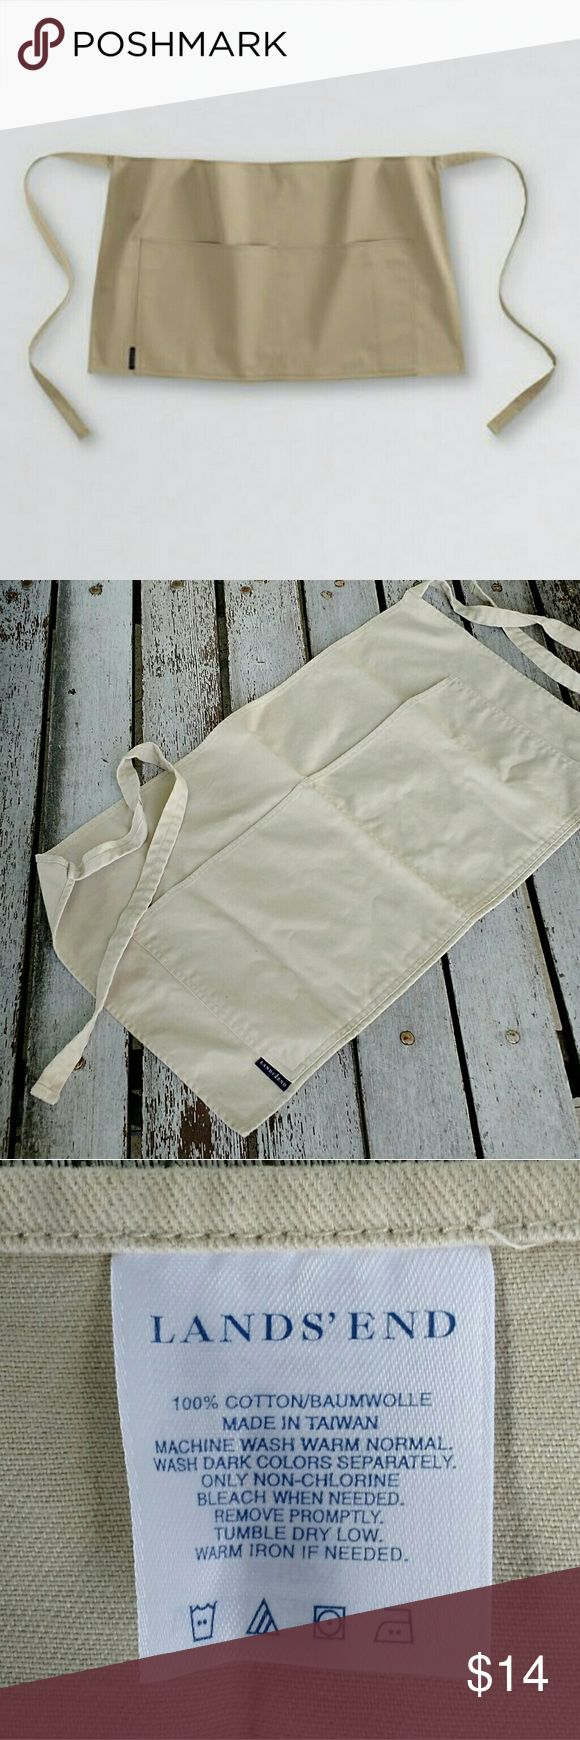 LANDS' END Tan Gardening Workshop Half Apron Perfect for storing tools and seed packets, or even change at your yard sale, this new without tags (came in a bag) apron is super handy. Light tan / khaki color. One size fits most. Tie back. Lands' End Accessories Belts